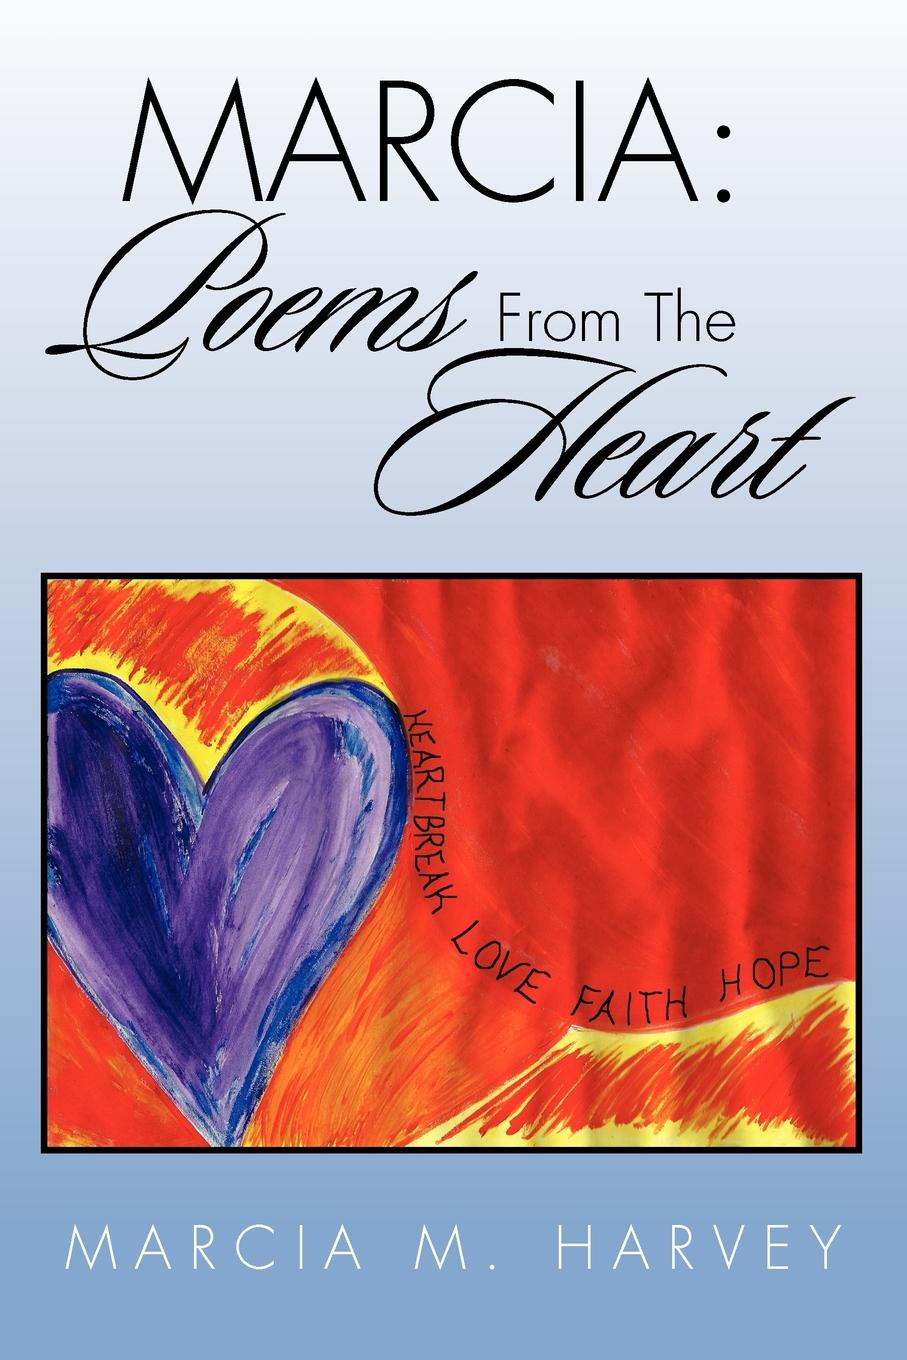 Marcia M. Harvey Marcia. Poems from the Heart sara nell brannon poems and stories from the heart